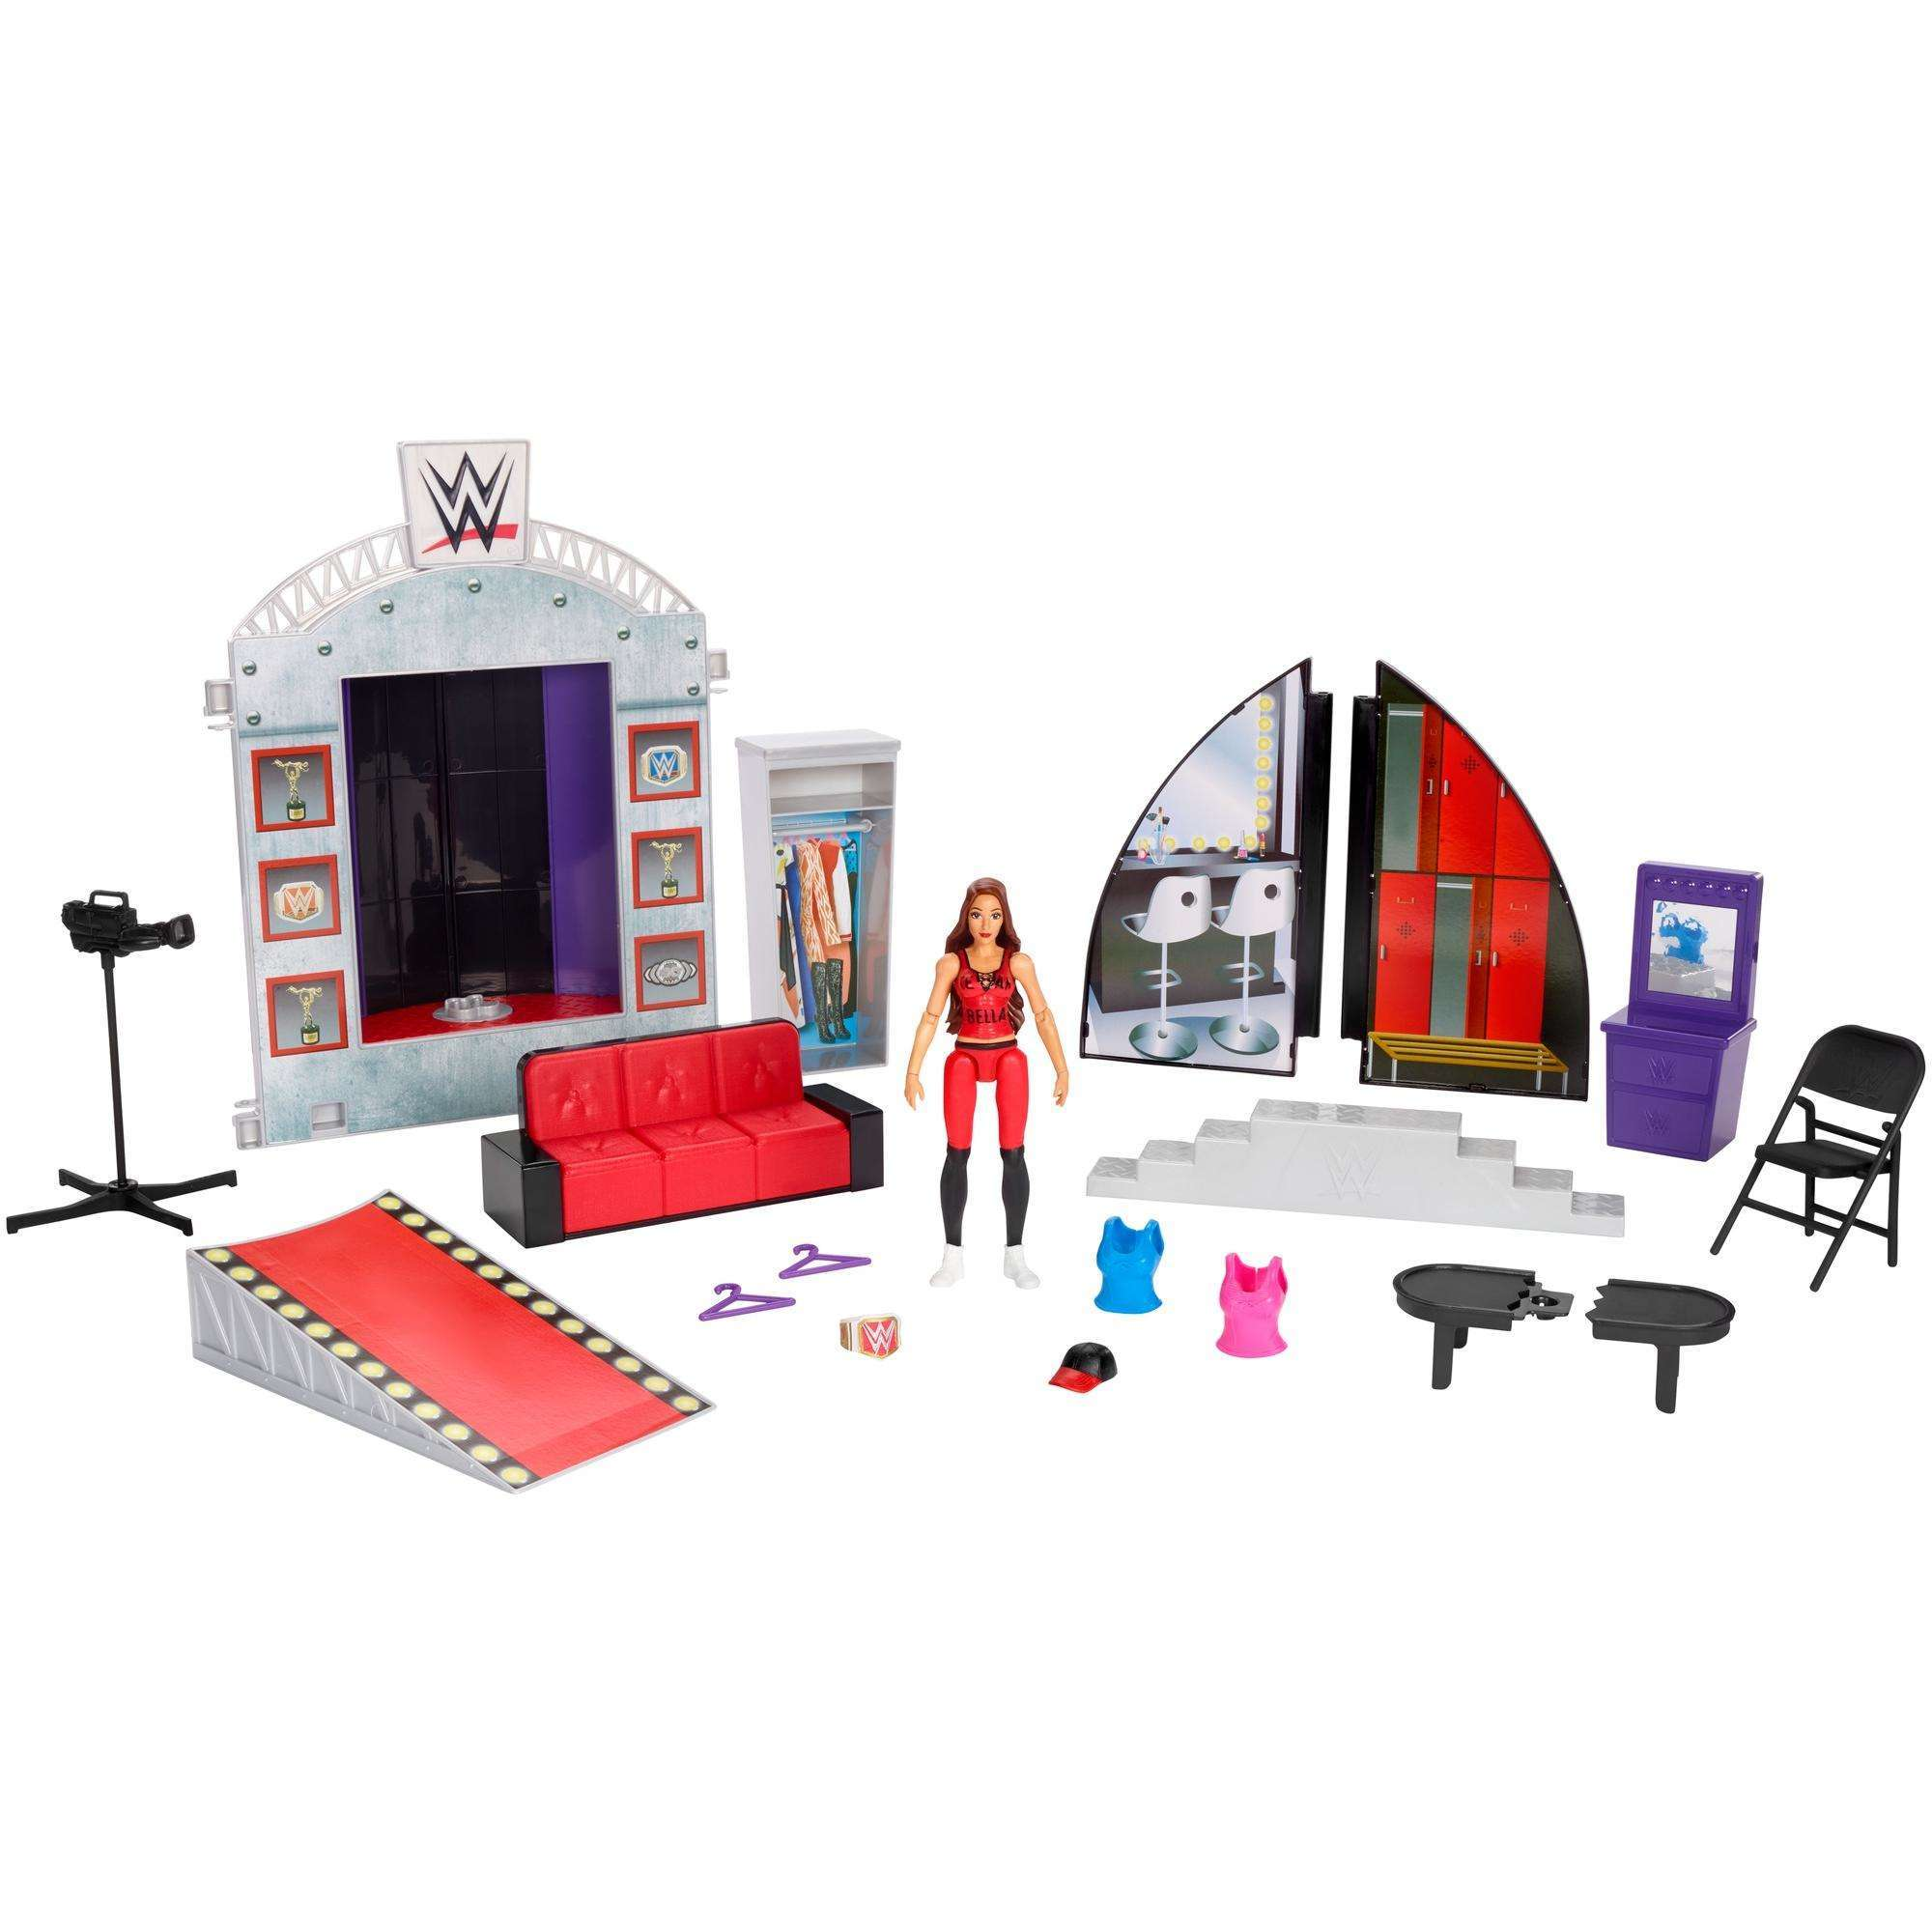 WWE Superstars Ultimate Entrance Playset by Mattel